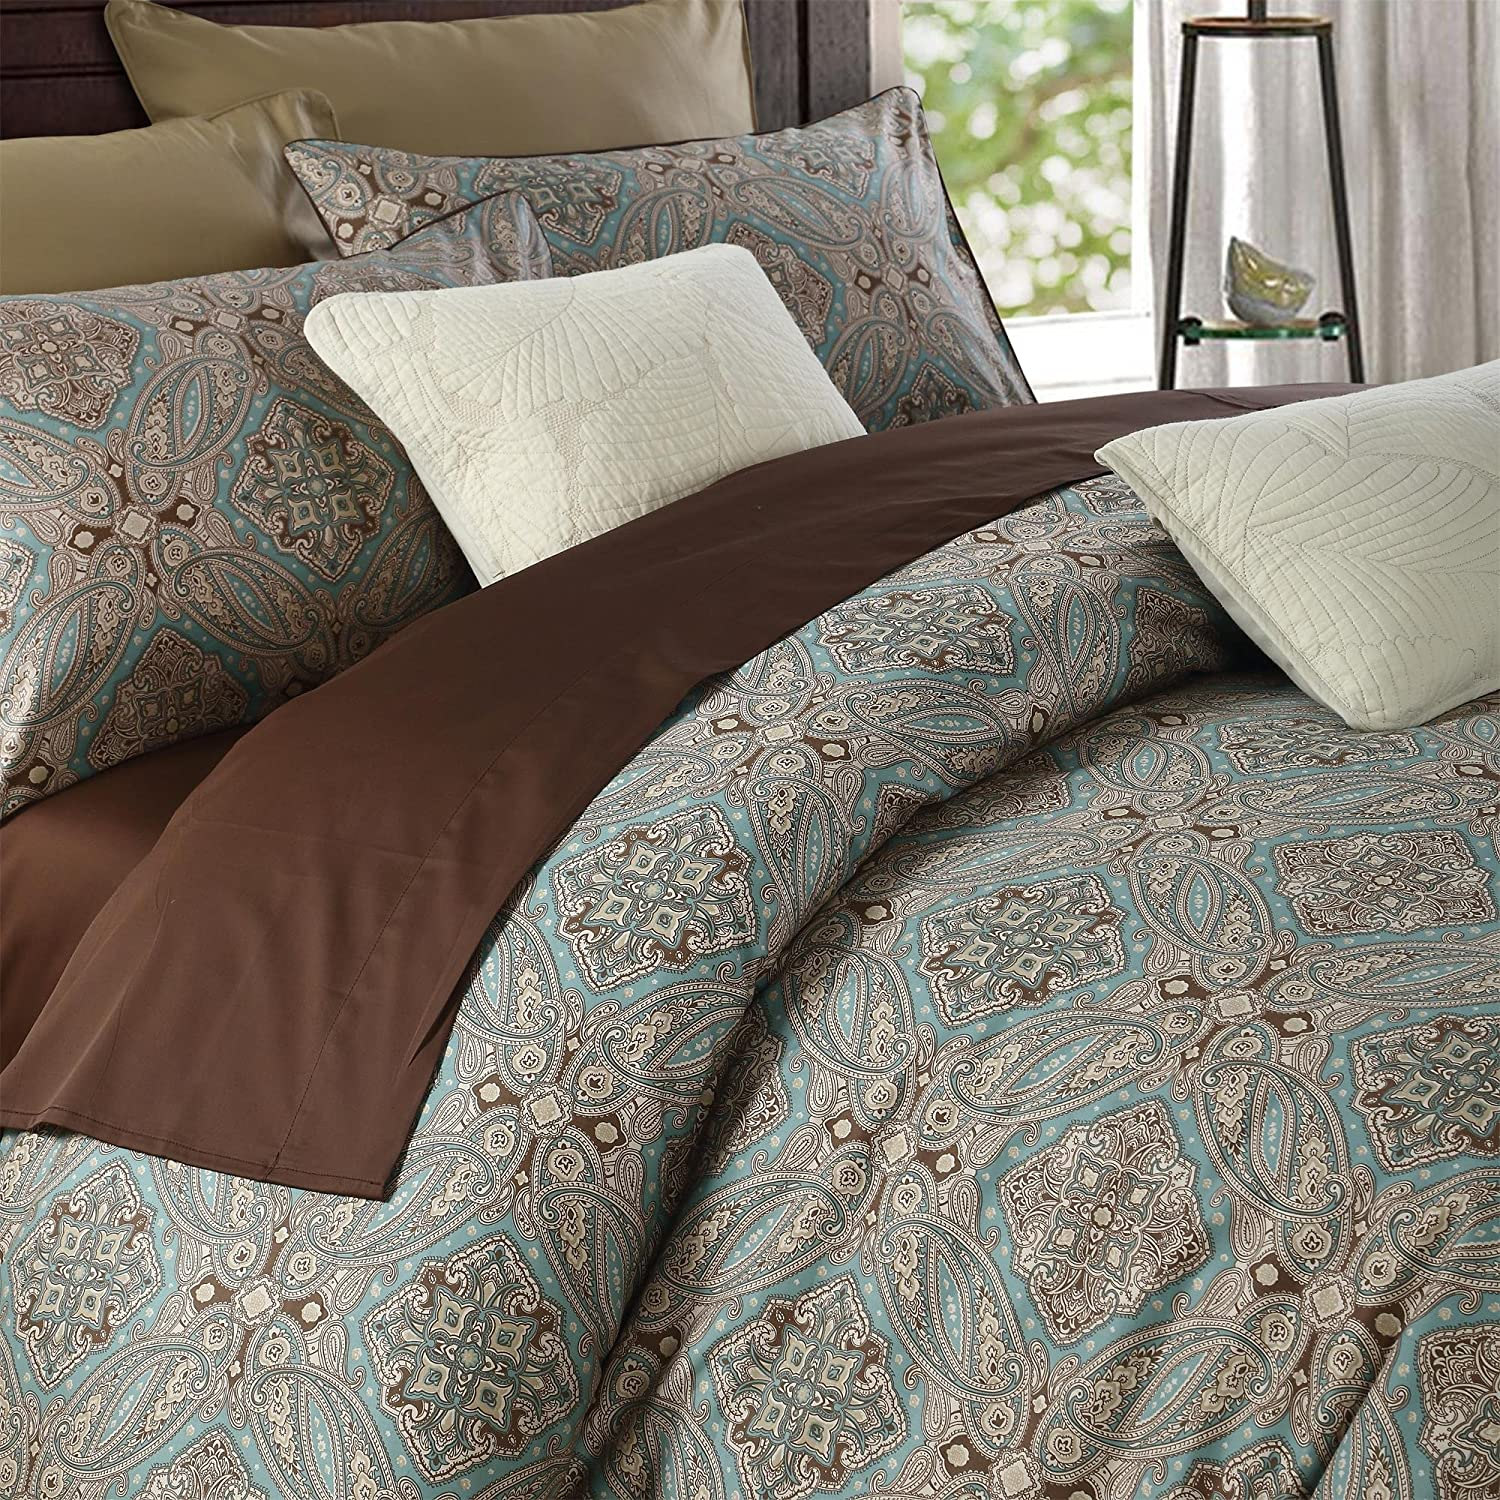 Brandream Luxury Hotel Classy Paisley Regal Themed Duvet Cover Set 100% Cotton Sateen